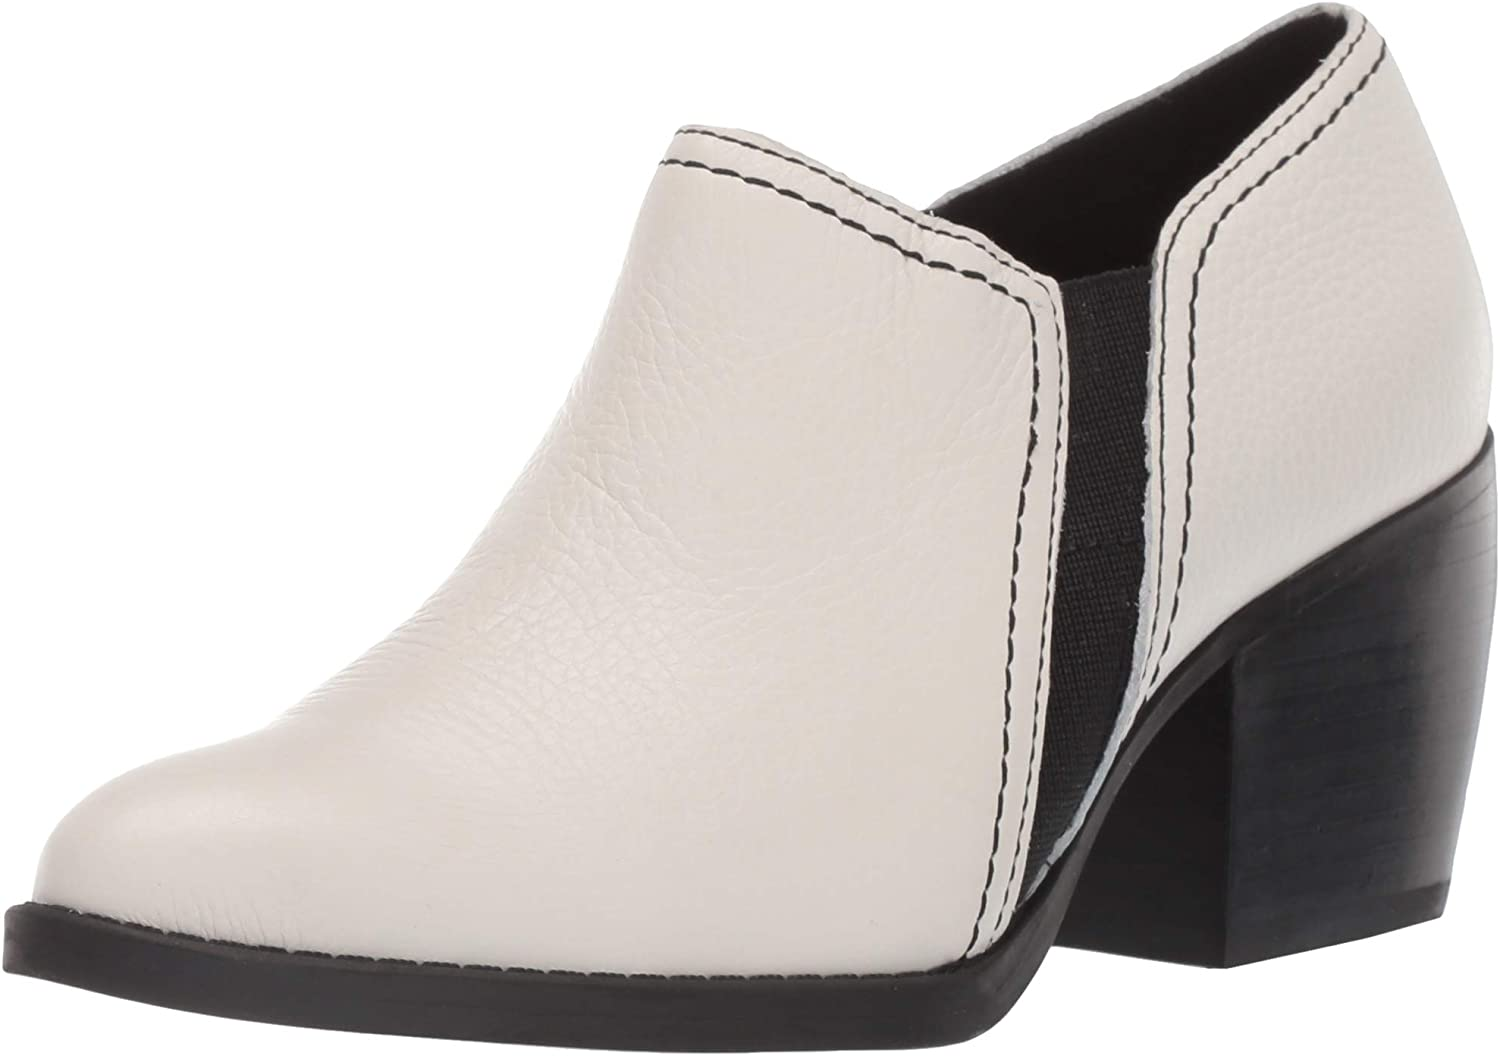 Naturalizer Women's Femma Ankle Boot Sales of SALE items Max 85% OFF from new works